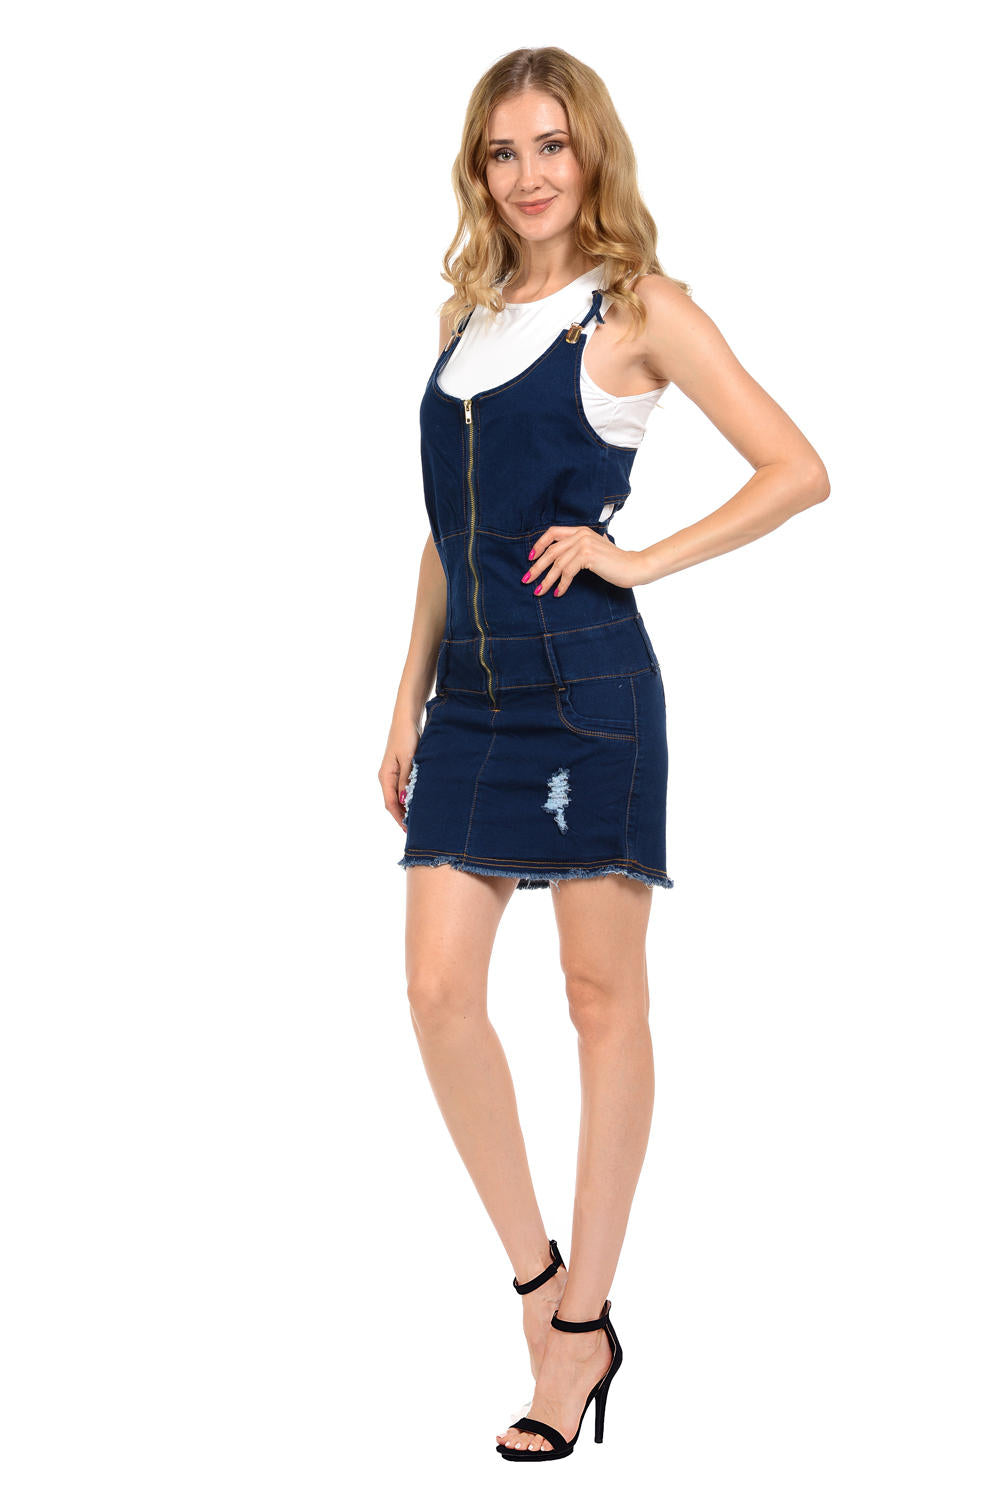 M.Michel Women's Denim Dress - Style A5194-R